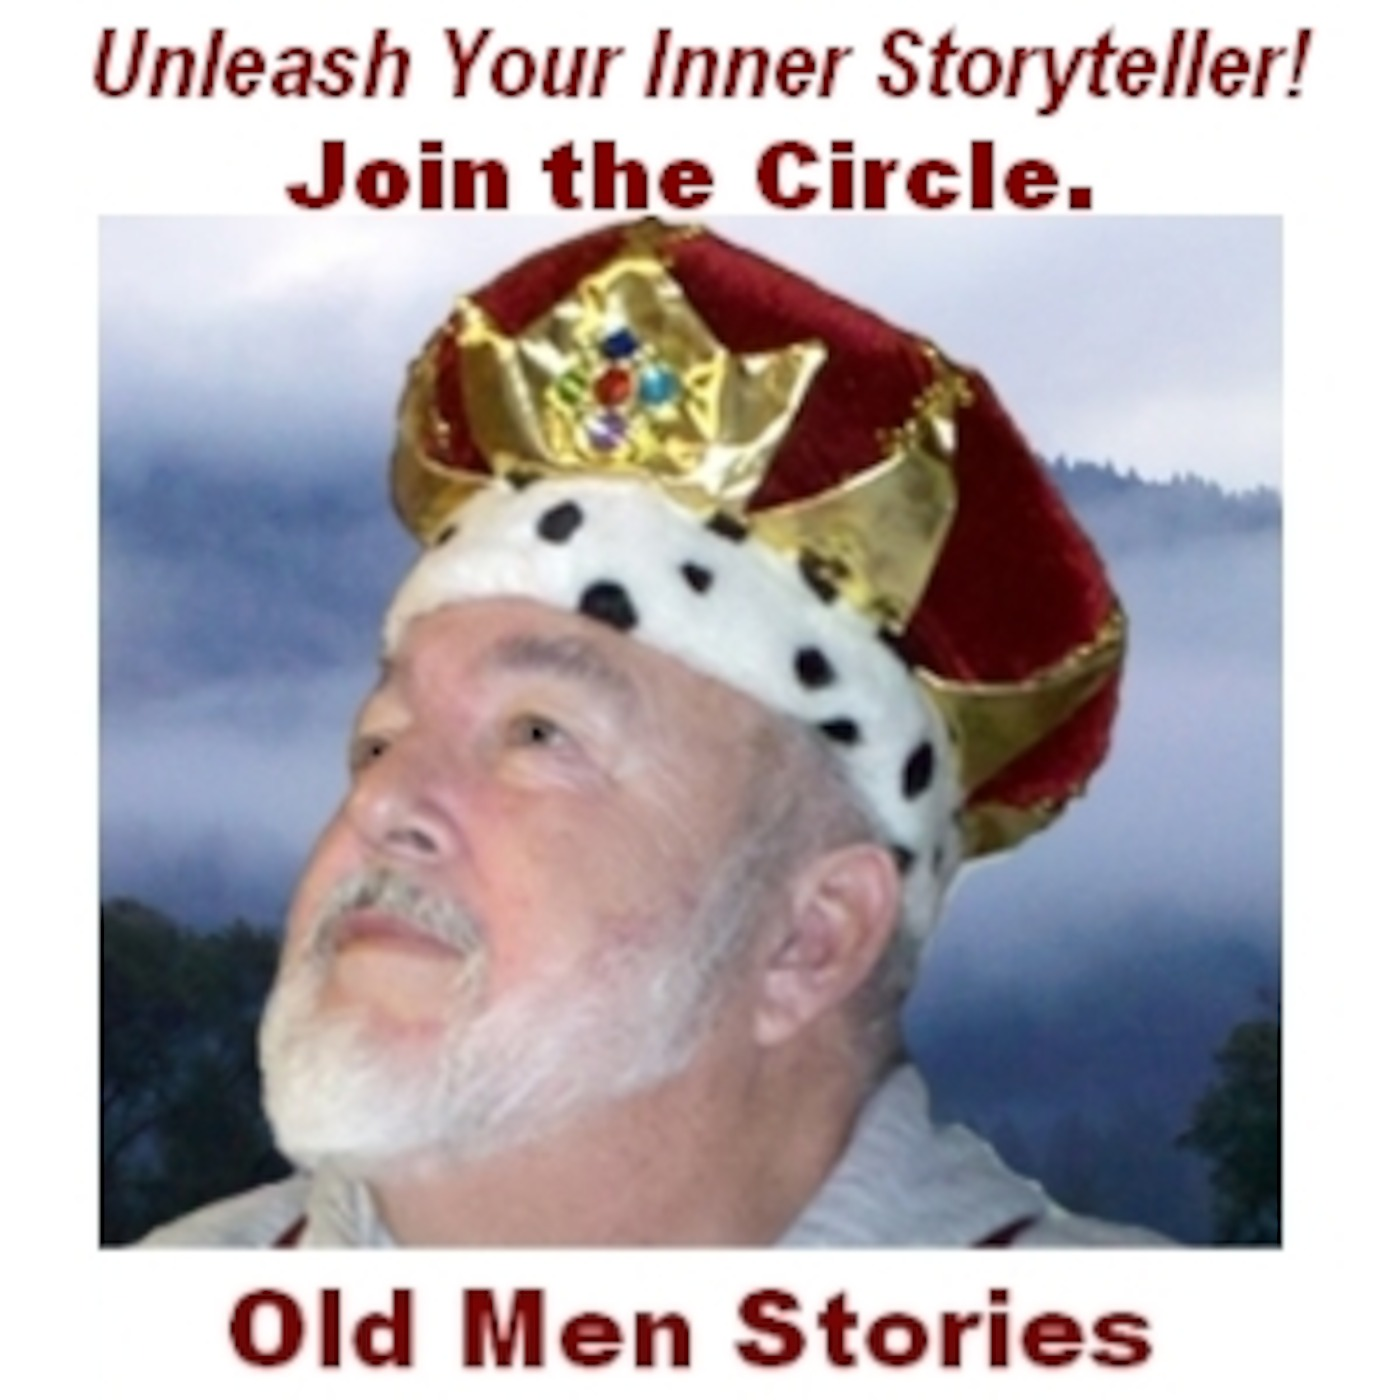 Old Men Stories